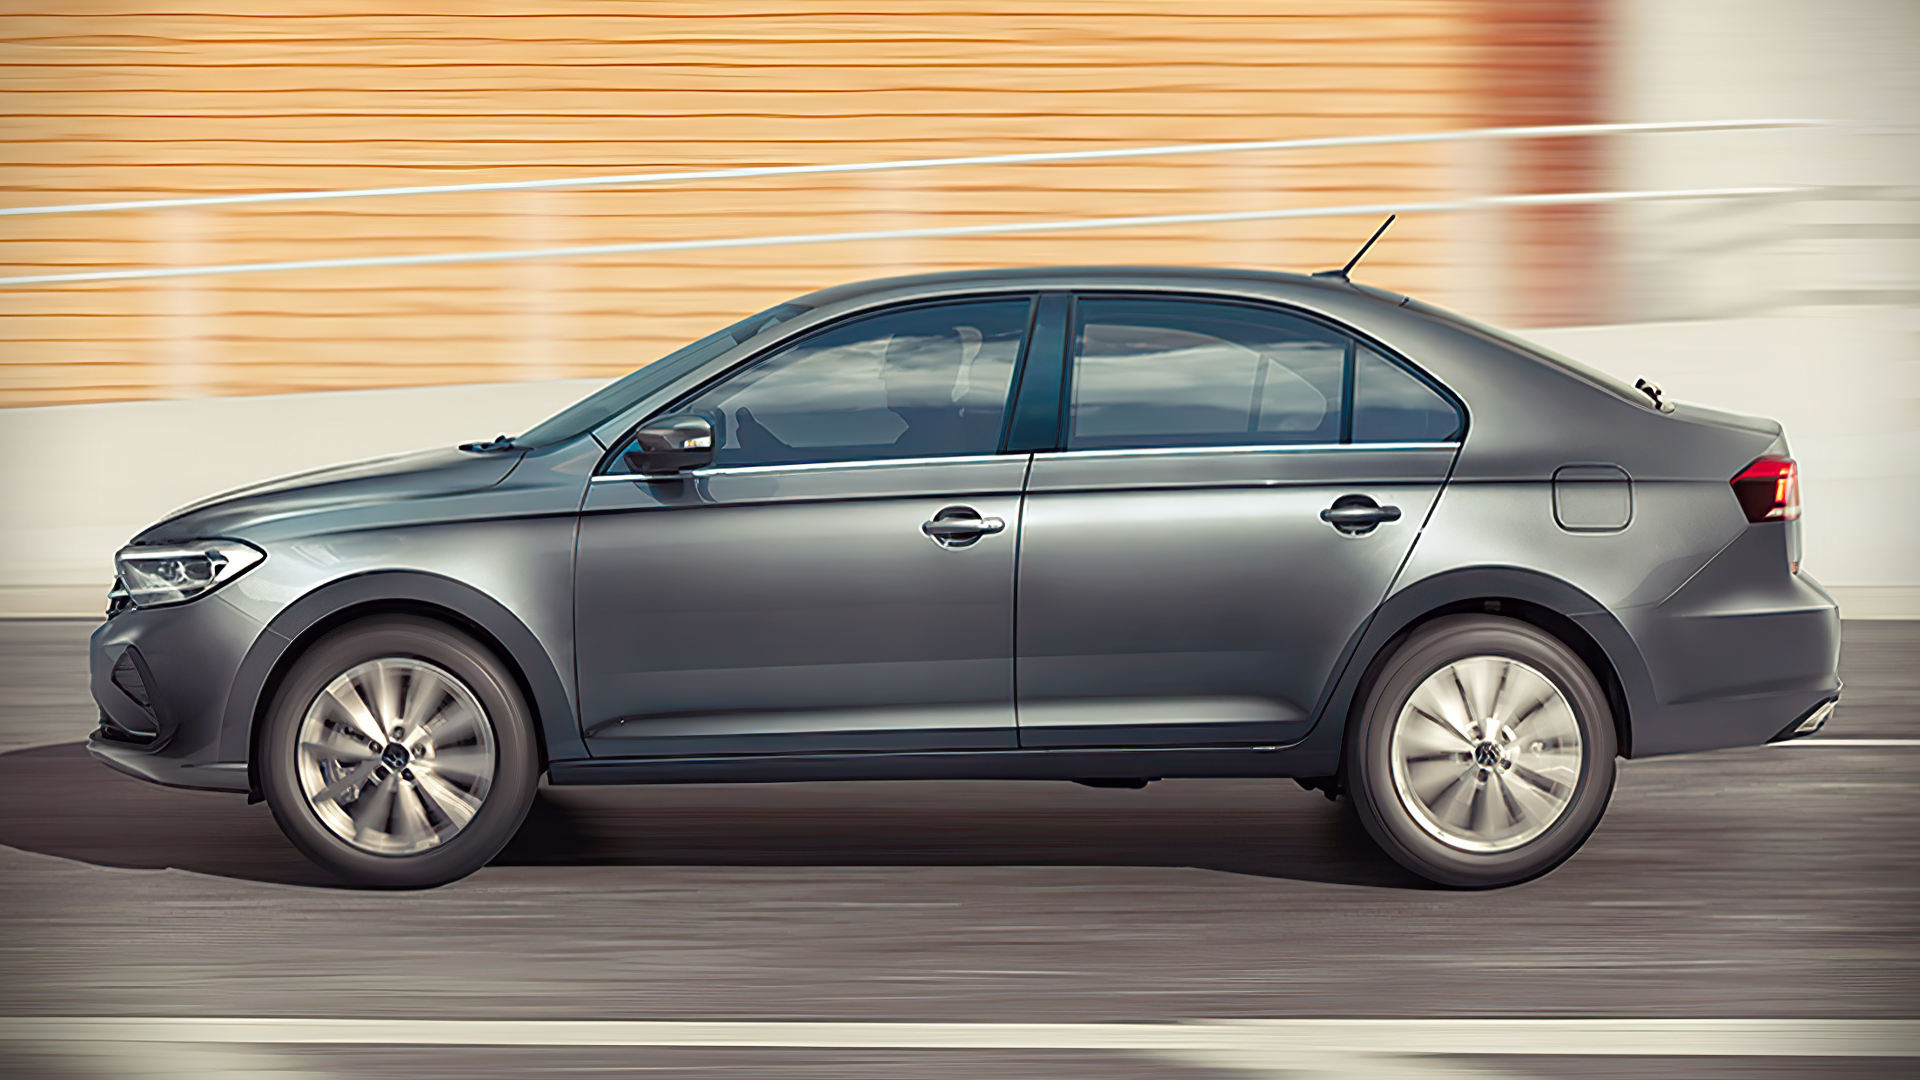 2020 Vw Polo Sedan Side Wallpaper